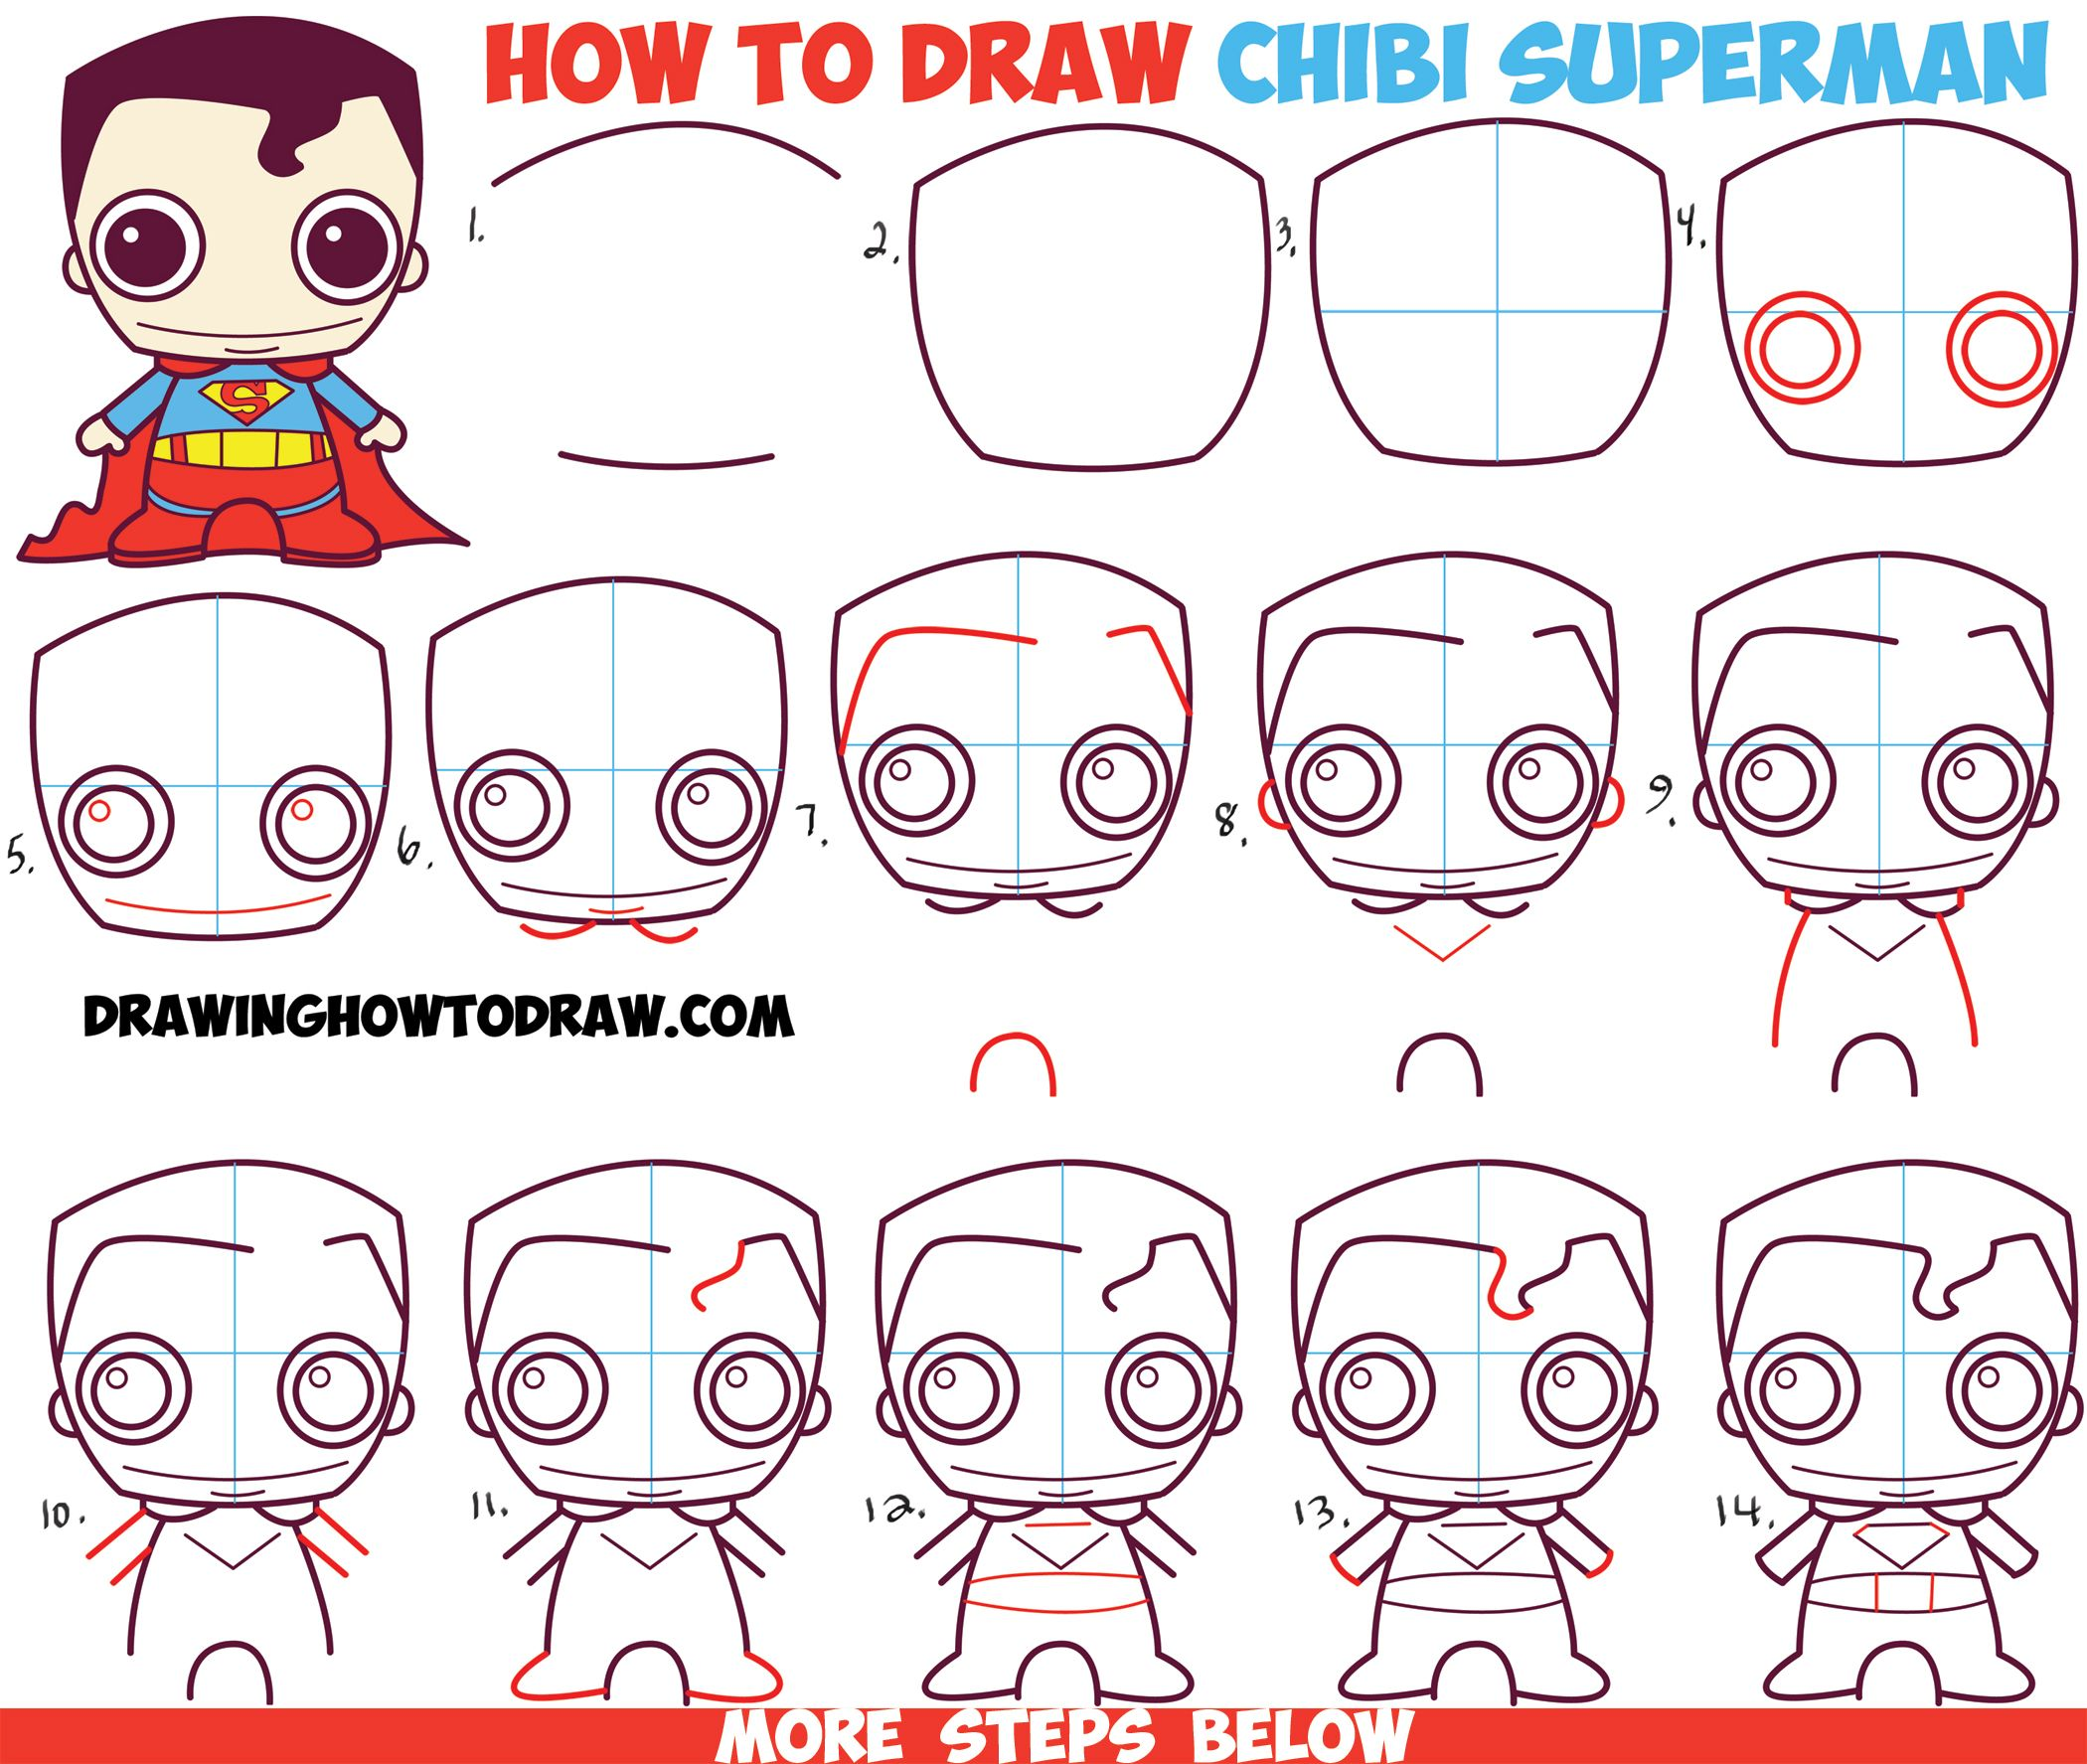 How to Draw Cute Chibi Superman from DC ics in Easy Step by Step